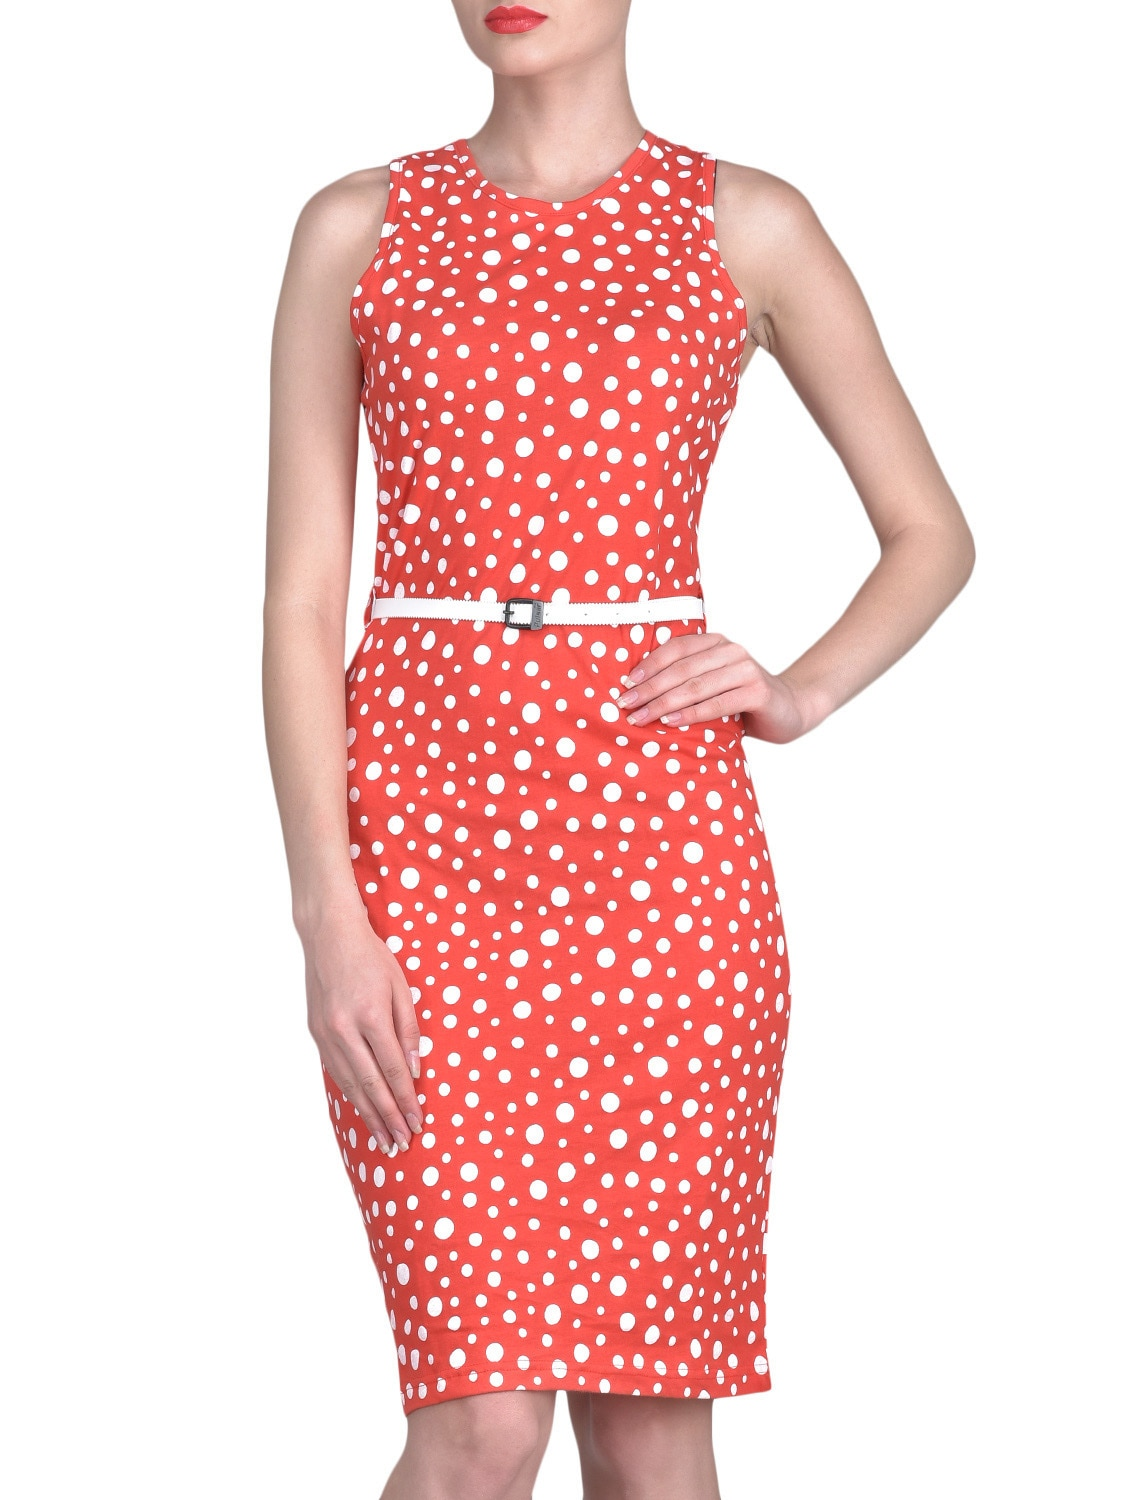 Red Polka Dots Sleeveless Cotton Dress - By